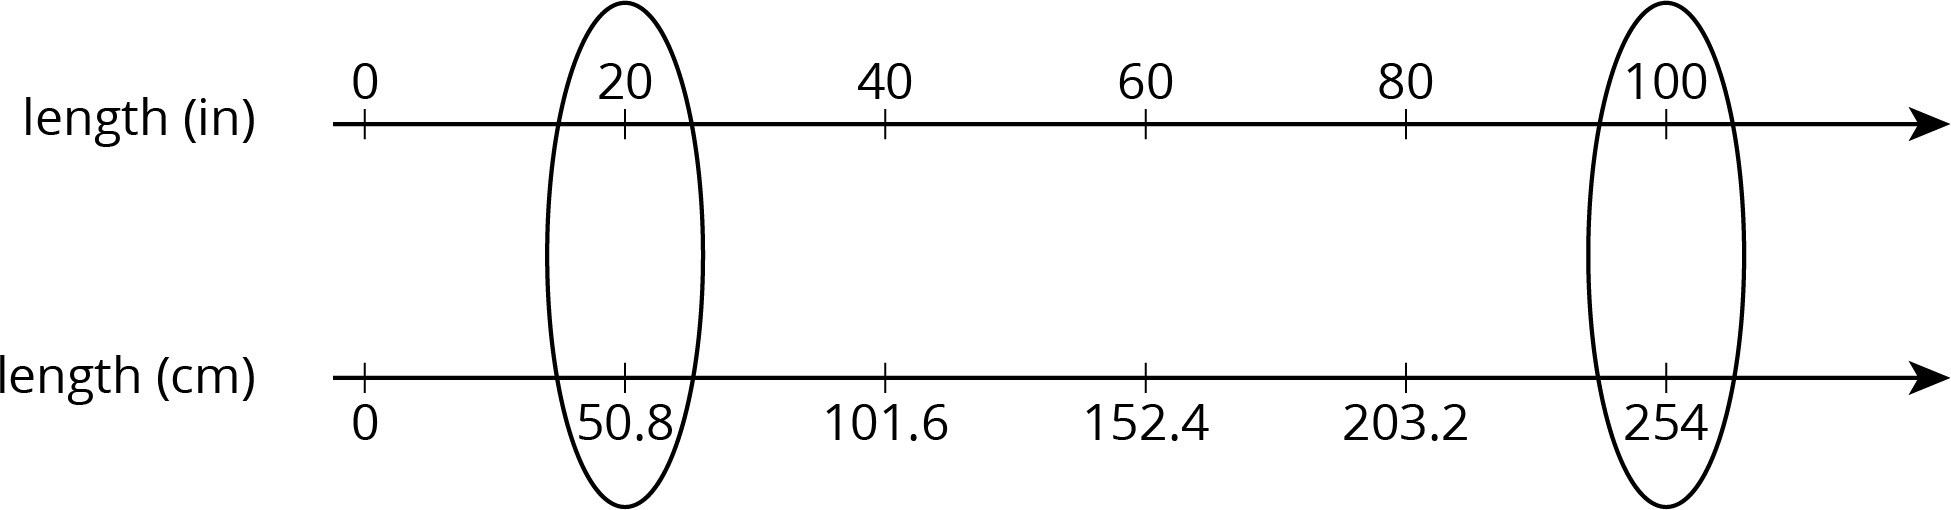 "A double number line with 6 evenly spaced tick marks. The top number line is labeled ""length, in inches"" and starting with the first tick mark 0, 20, 40, 60, 80, and 100 are labeled. The bottom number line is labeled ""length, in centimeters"" and starting with the first tick mark 0, 50 point 8, 101 point 6, 152 point 4, 203 point 2, and 254 are labeled. There is one circle around the second tick marks in each line and one circle around the last tick mark in each line."